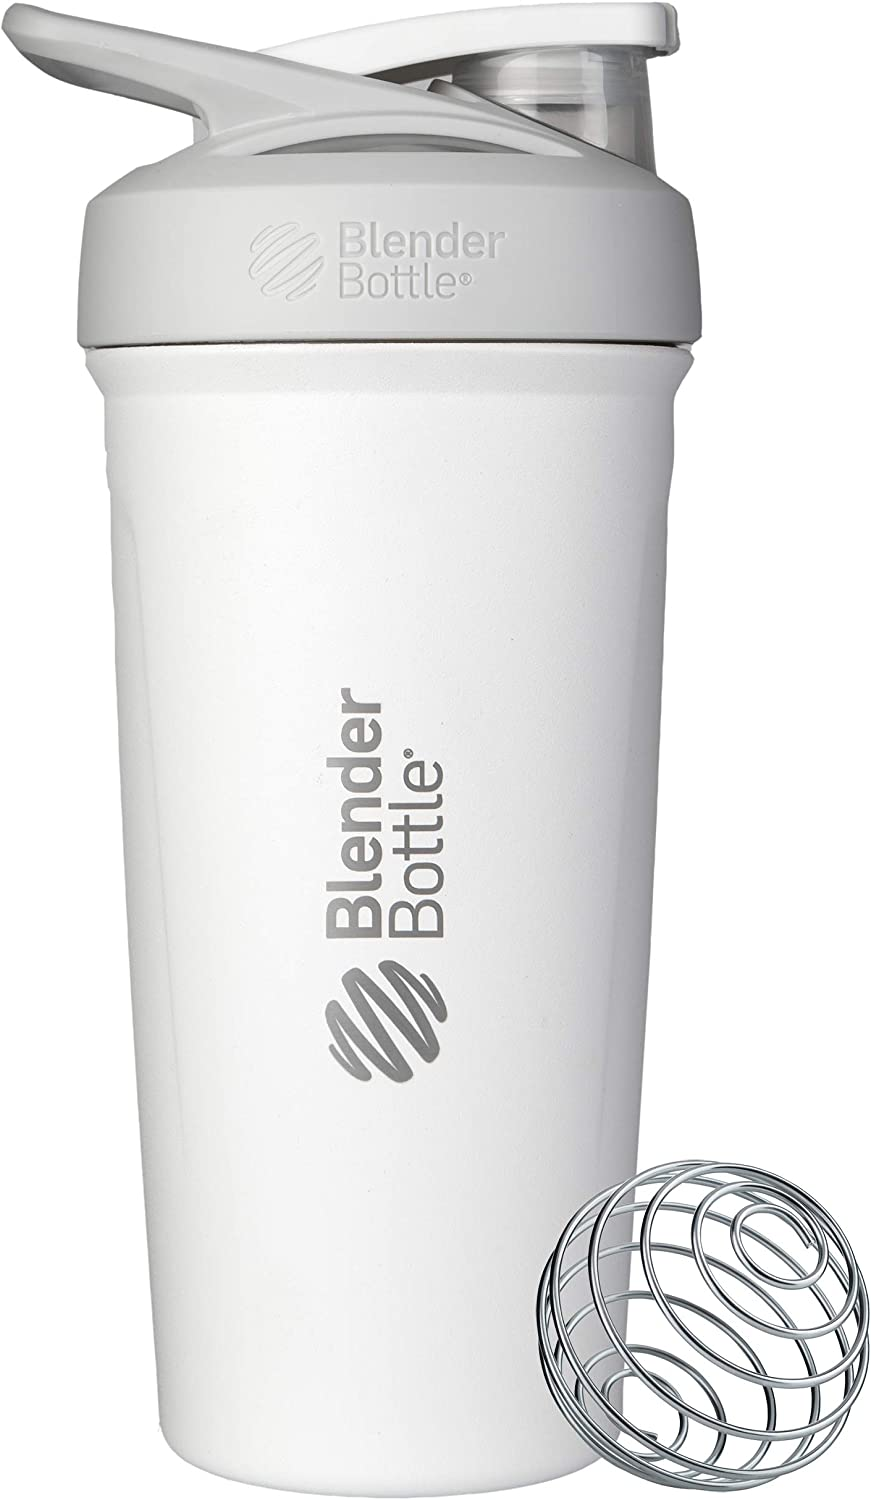 BlenderBottle Strada Insulated Shaker Bottle with Locking Lid, 24-Ounce, White